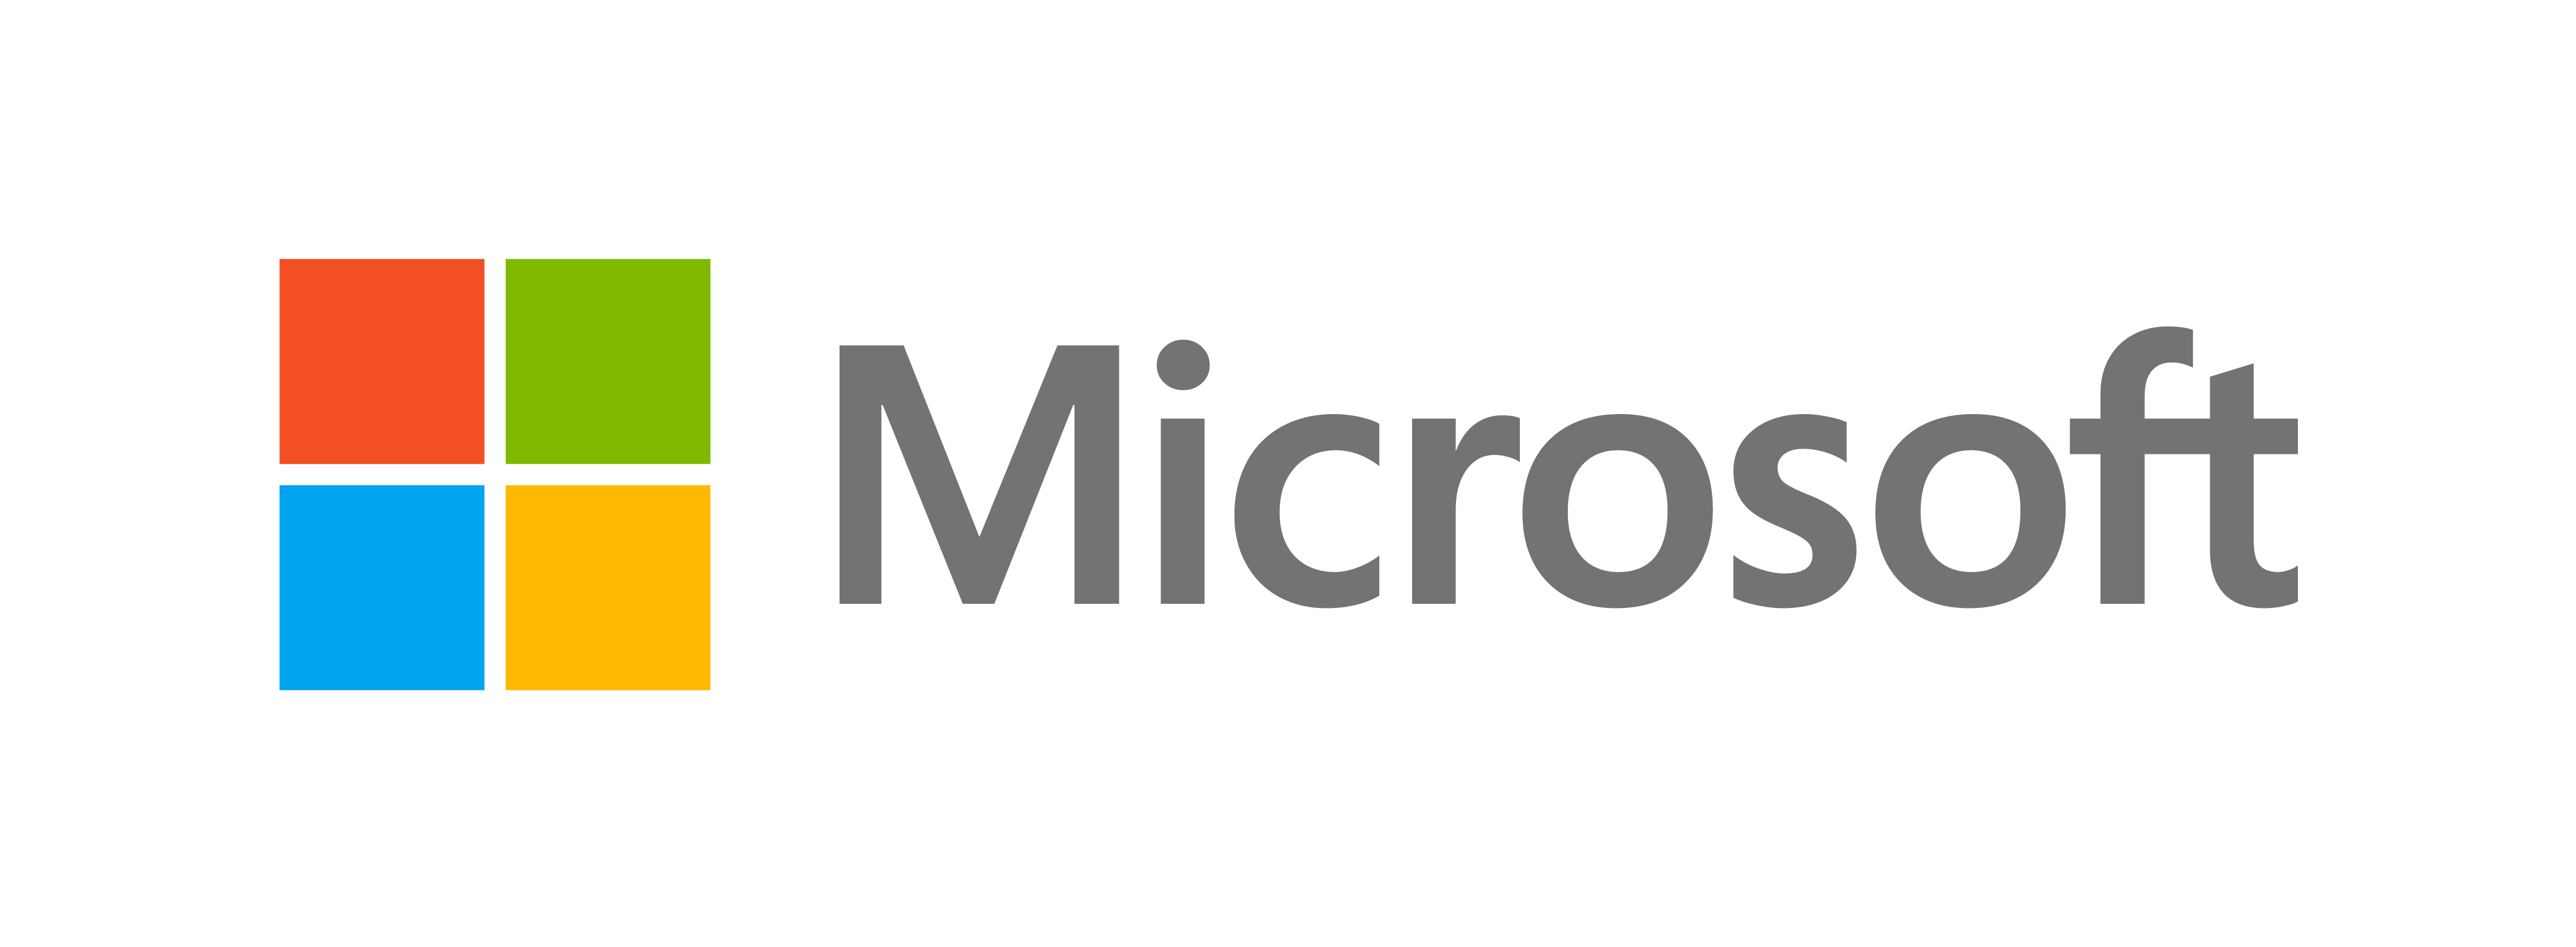 8867_Microsoft_5F00_Logo_2D00_for_2D00_screen